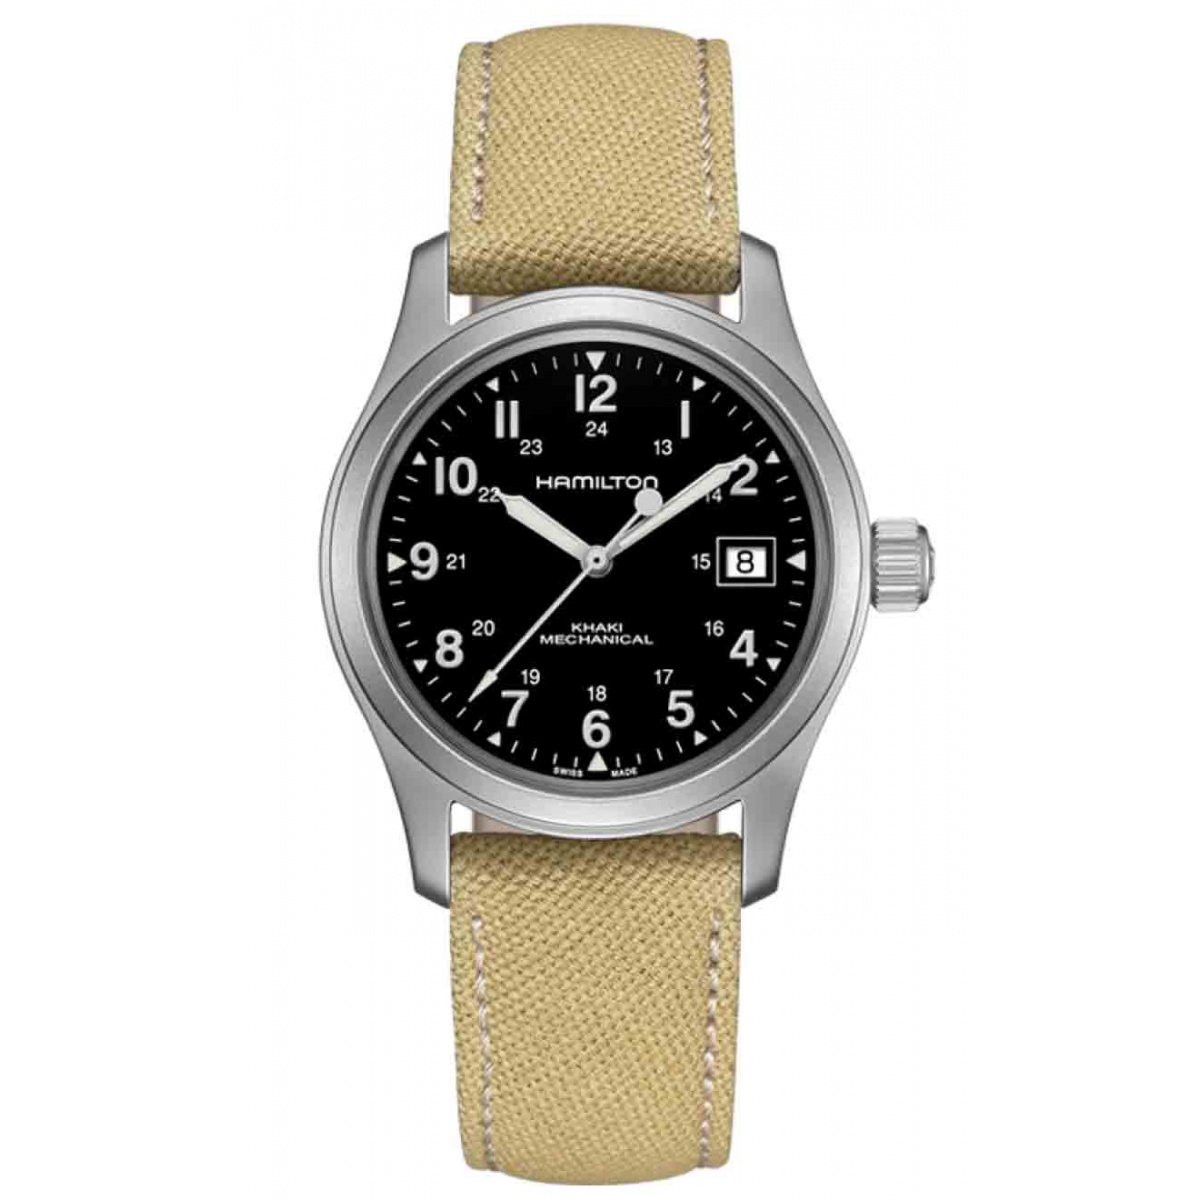 Hamilton KHAKI FIELD MECHANICAL - 50 M - ∅38 mm, Esfera negra, correa beige - - CALIBRE H-50